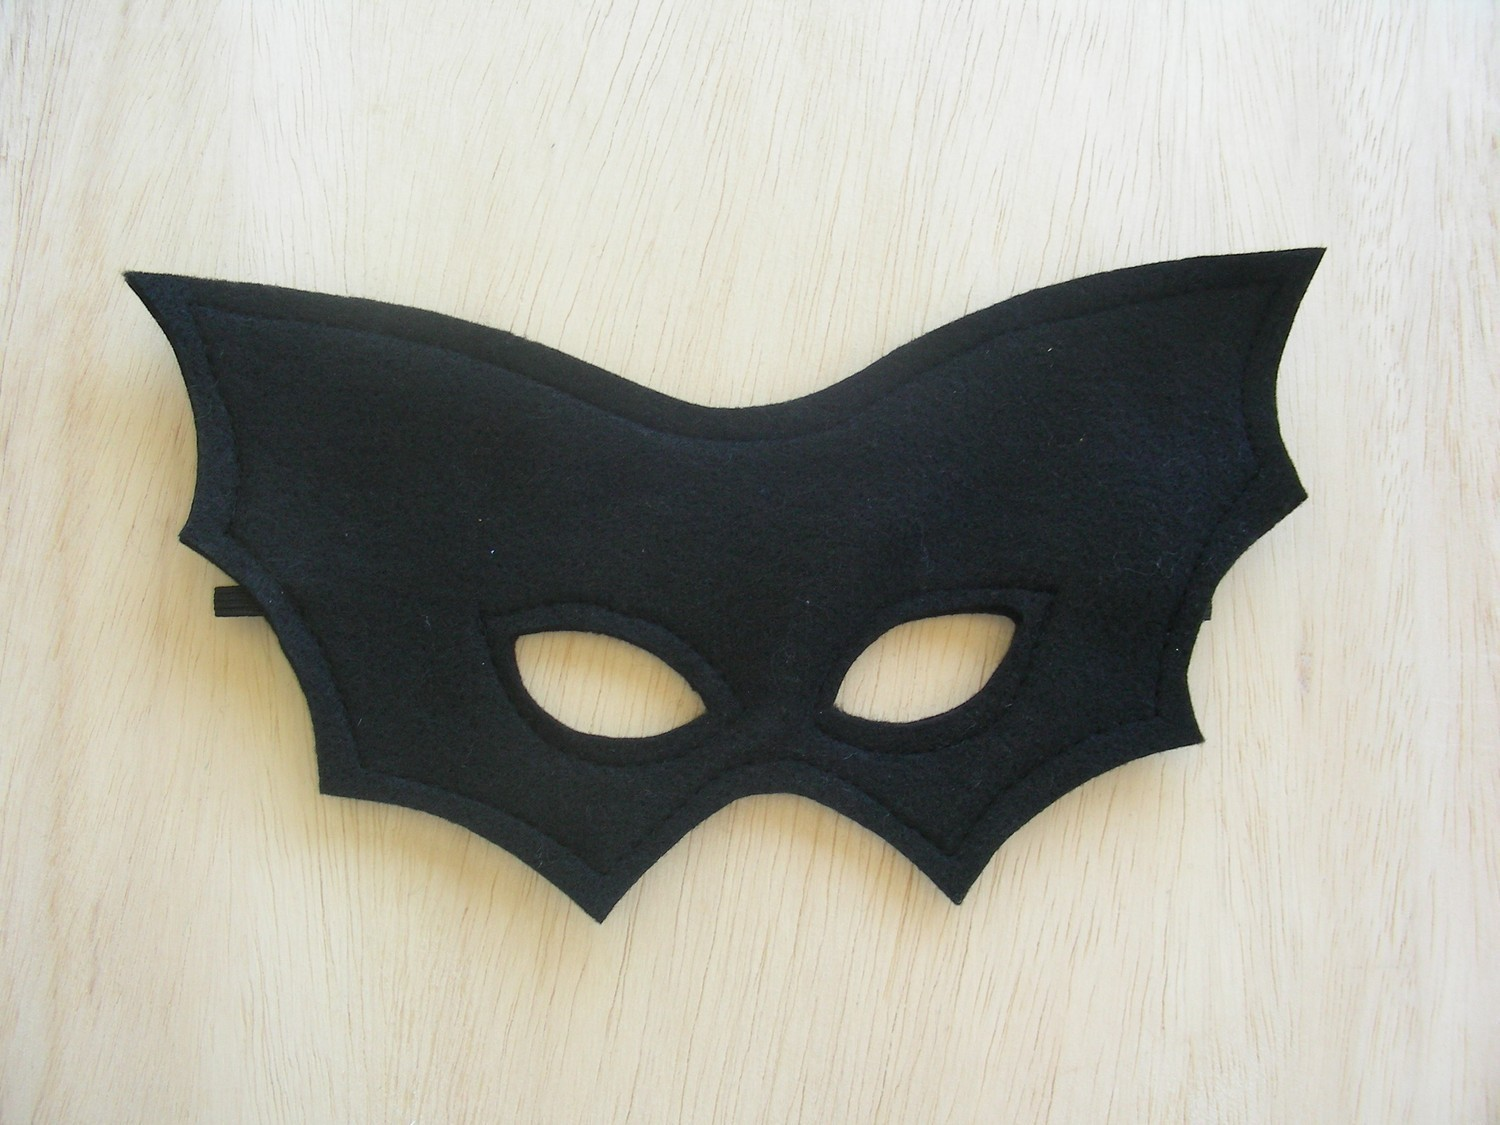 Uncategorized Printable Bat Mask bat craft mask preschool crafts mask